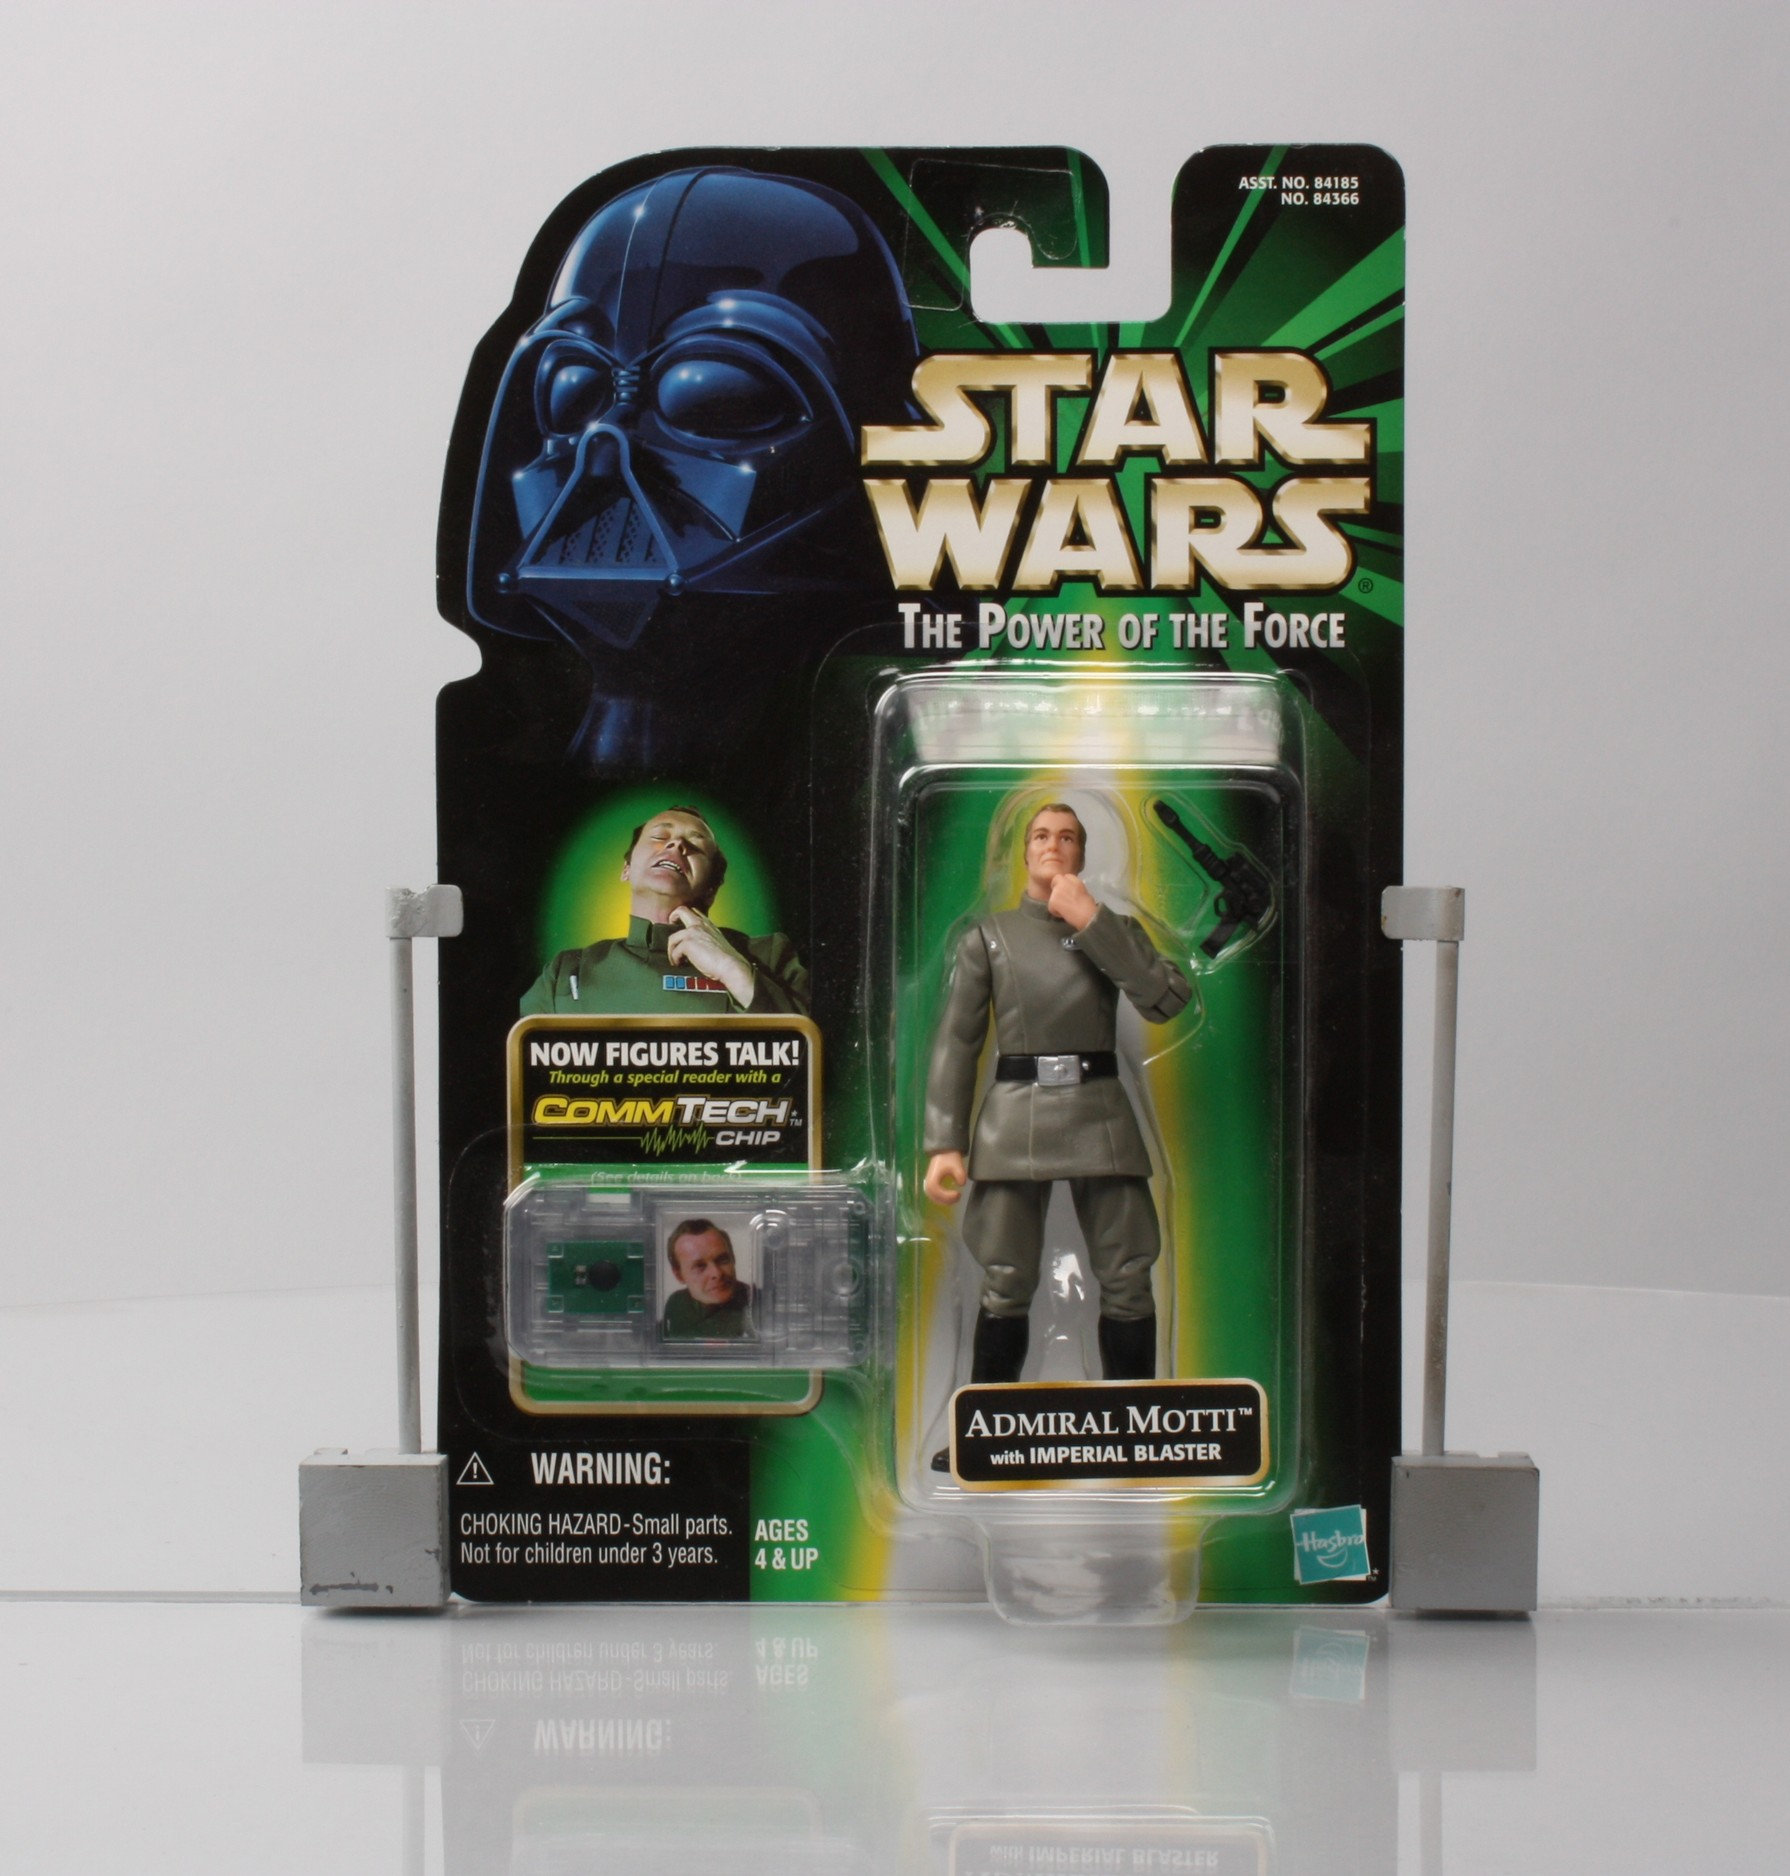 Admiral Motti with Imperial Blaster